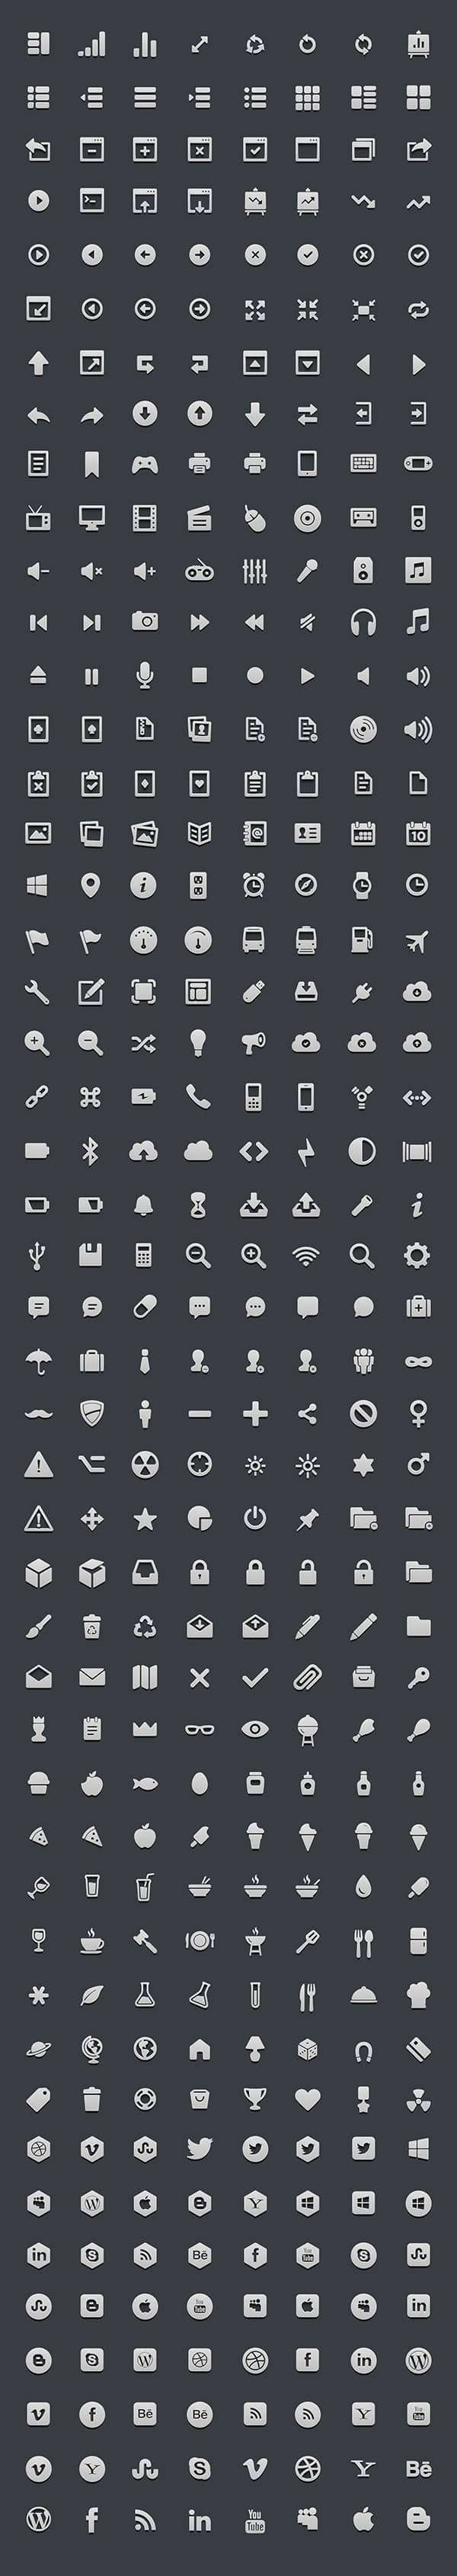 364 High-res 3D Icon Set | GraphicBurger